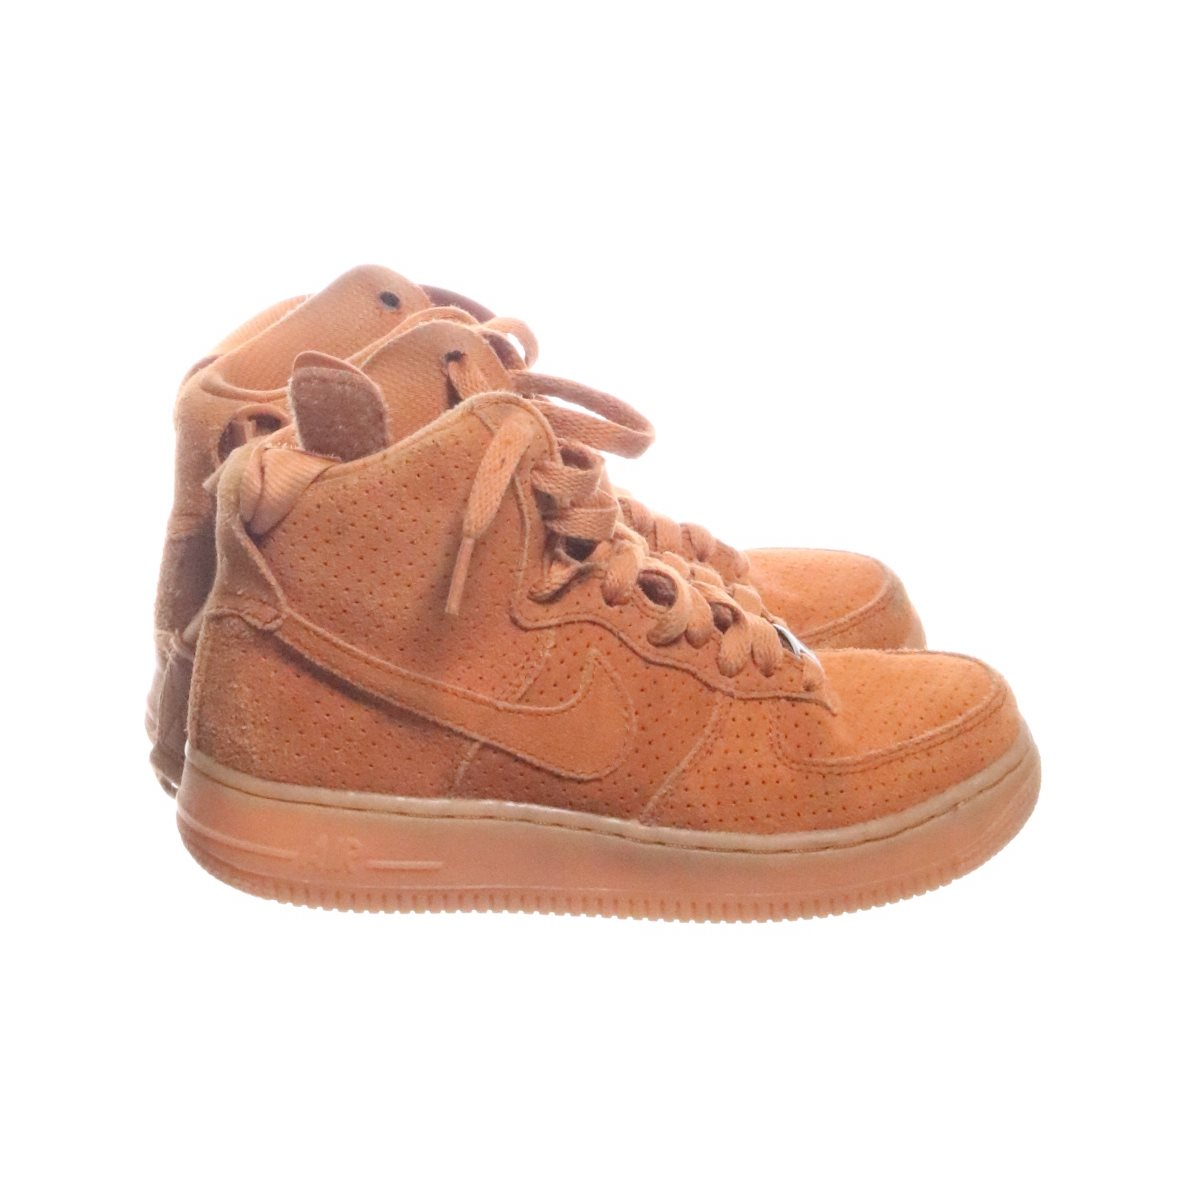 super populaire 9f40a 1f620 Nike, Sneakers, Strl: 36, Air Force One, .. (333398447) ᐈ ...